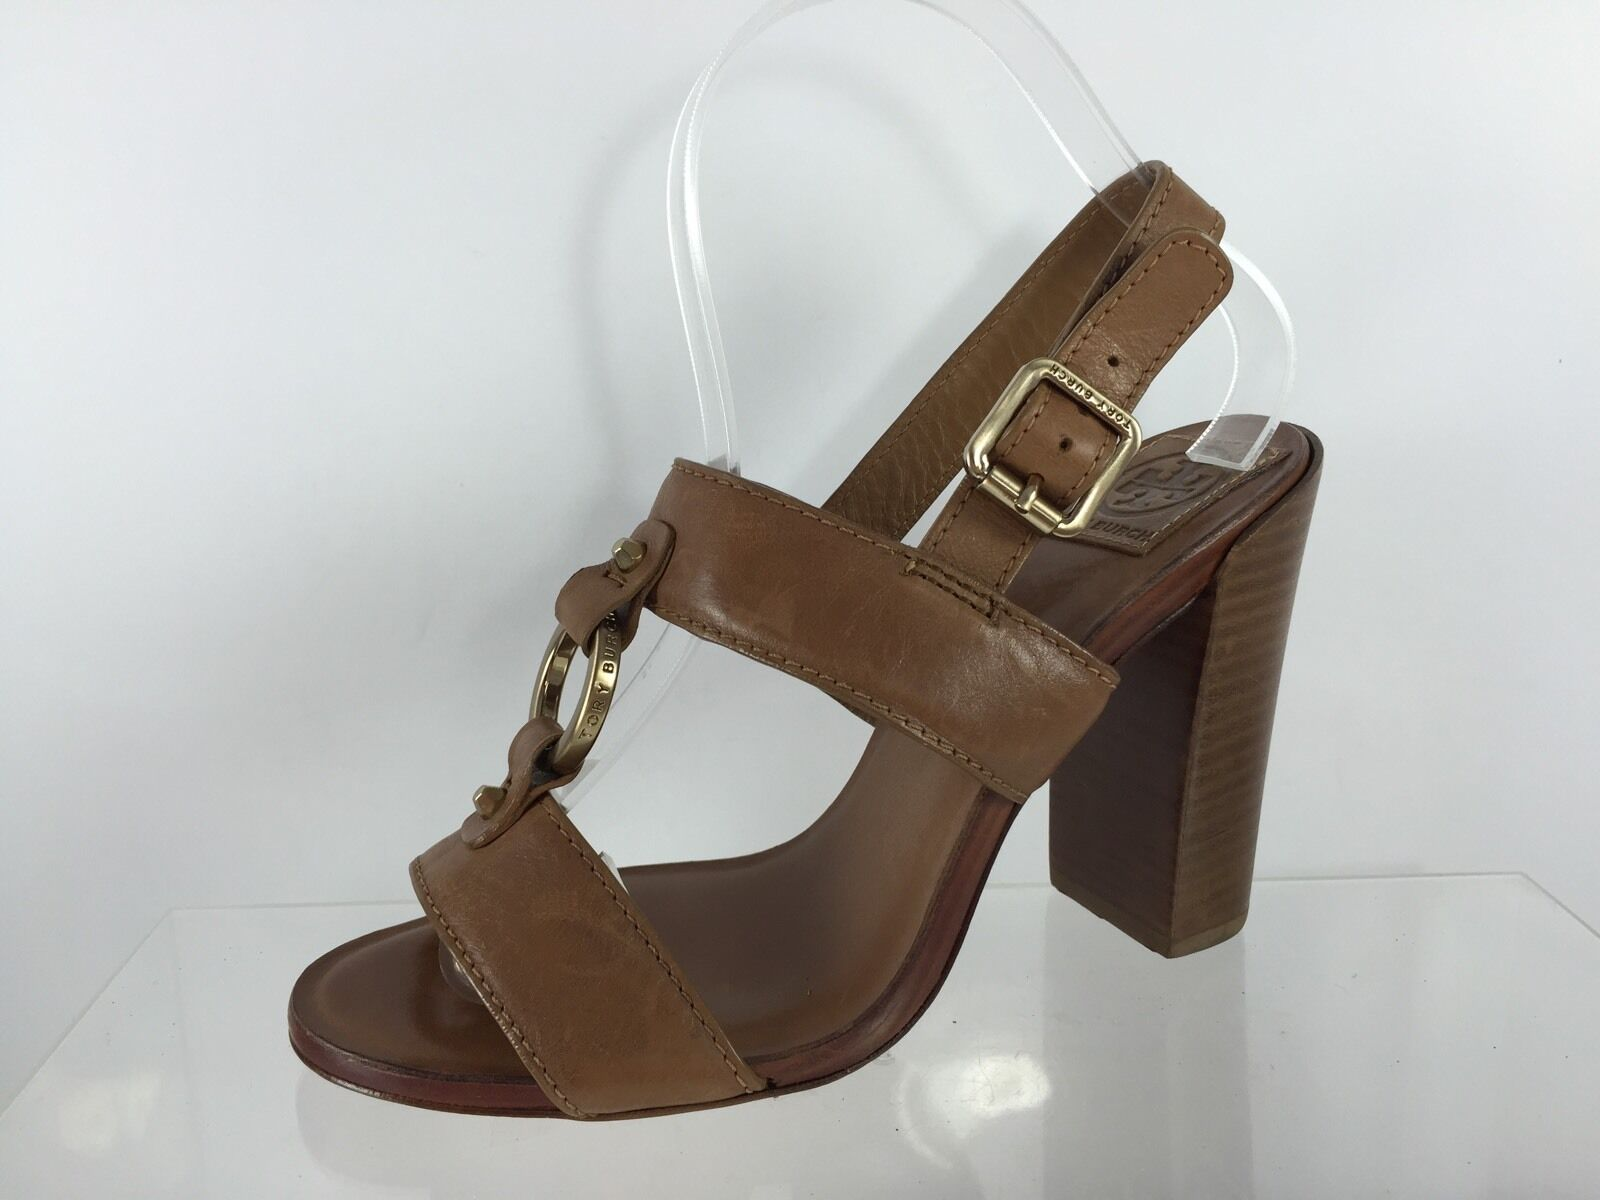 Tory Burch Donna Brown Leather Heels 8 M